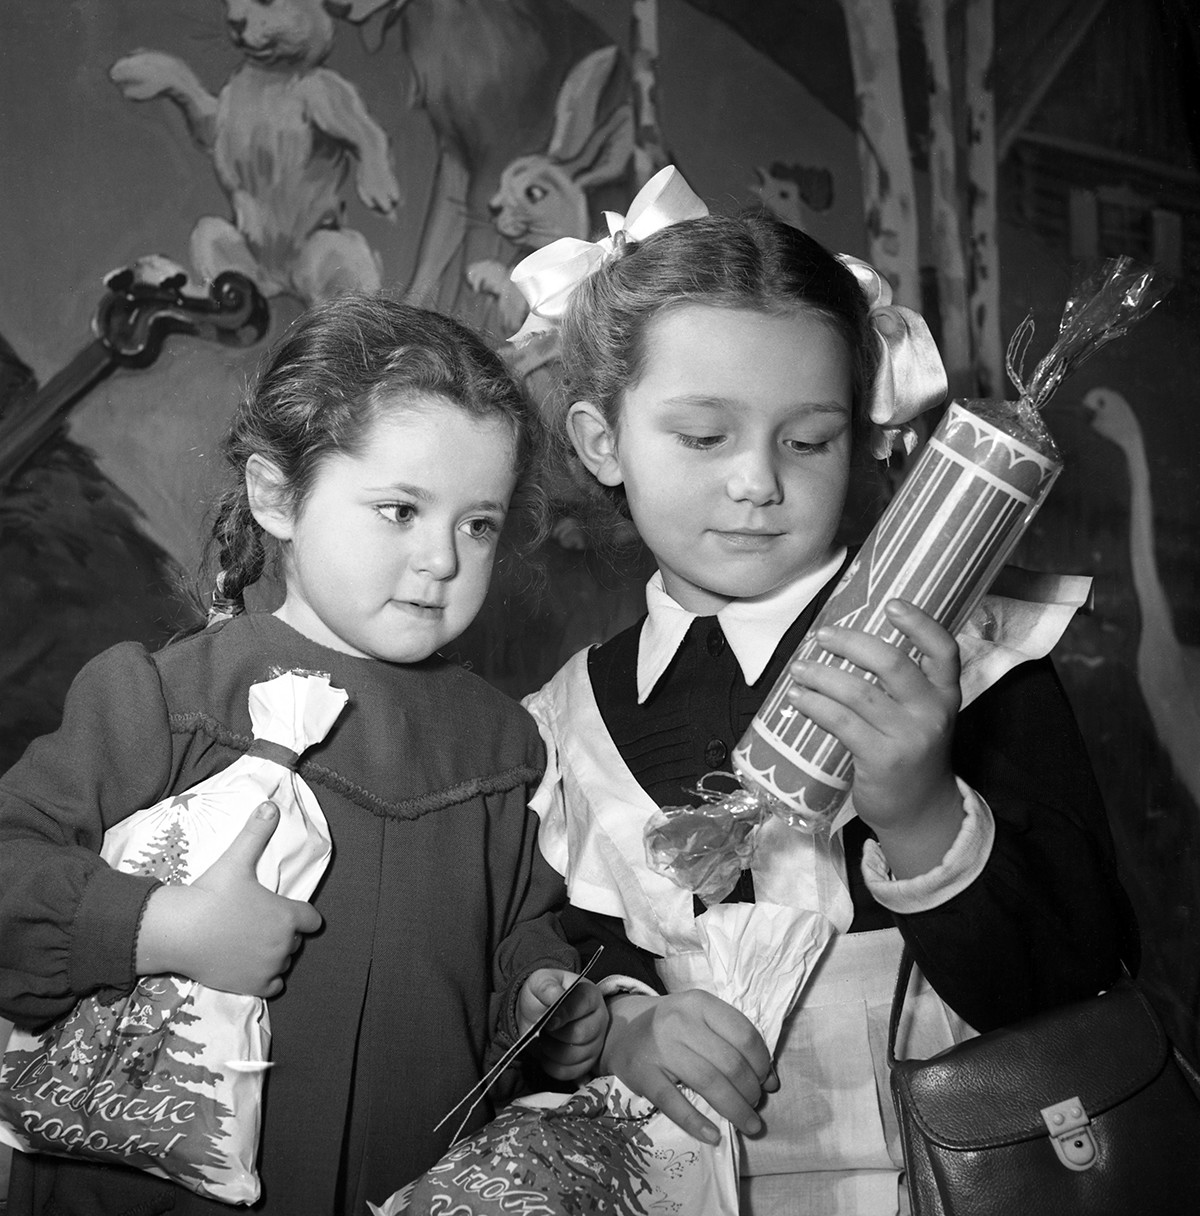 When it came to Christmas gift ideas, most children thought the sky was the limit for Soviet Ded Moroz.